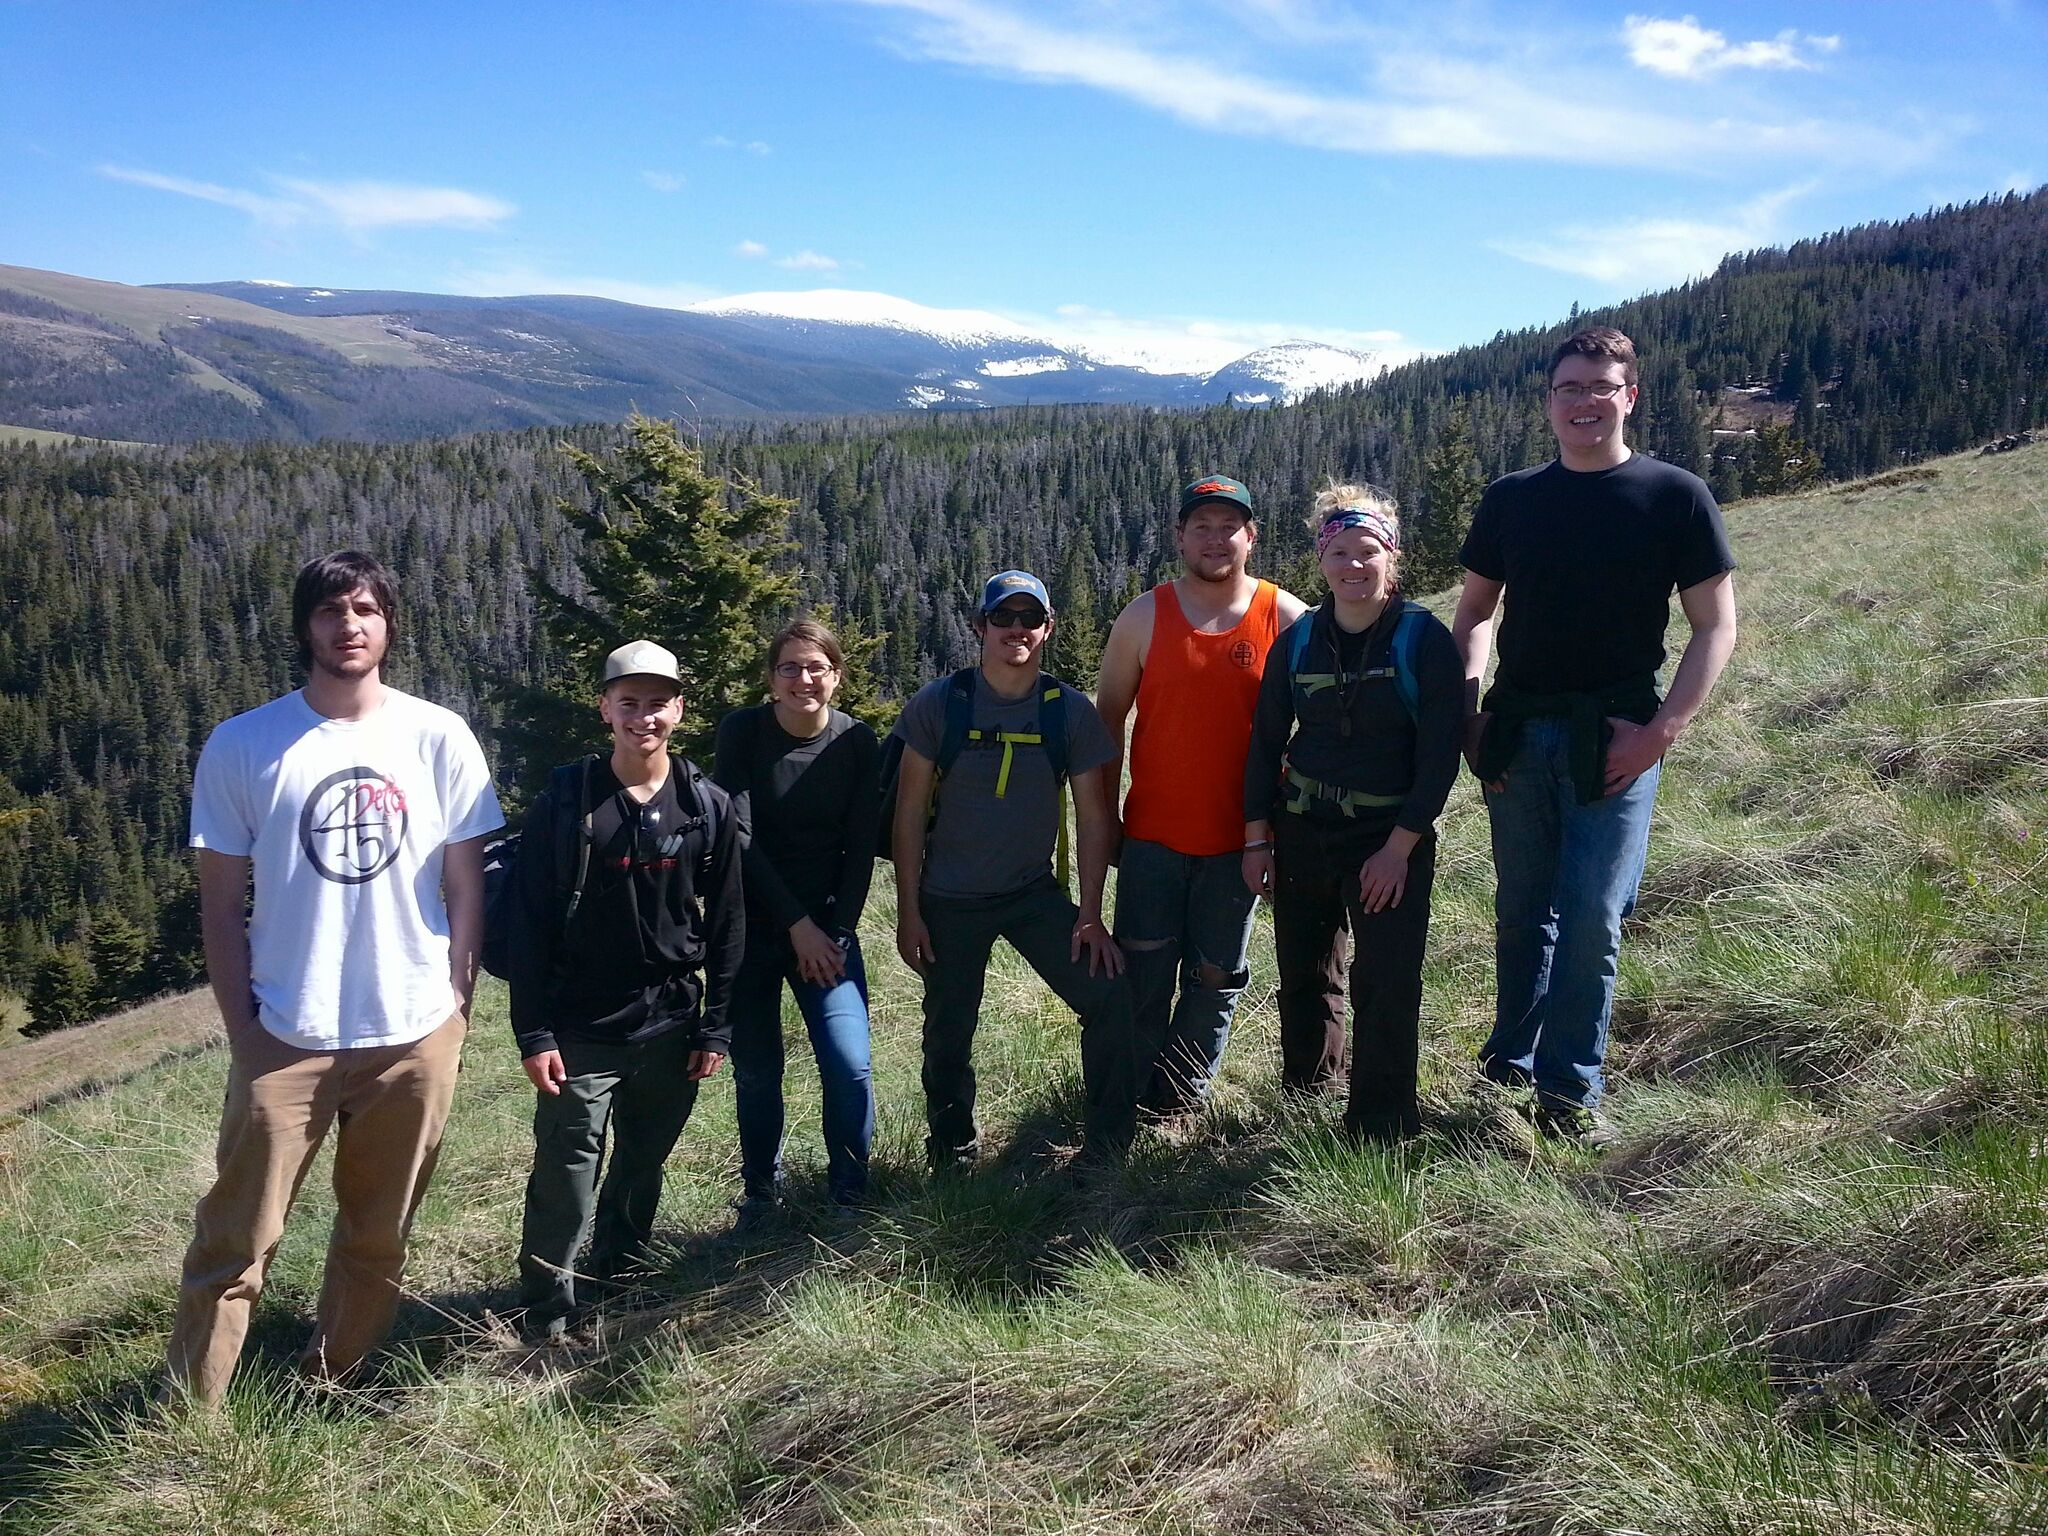 Students in Environmental Outreach & Interpretation standing on a hill